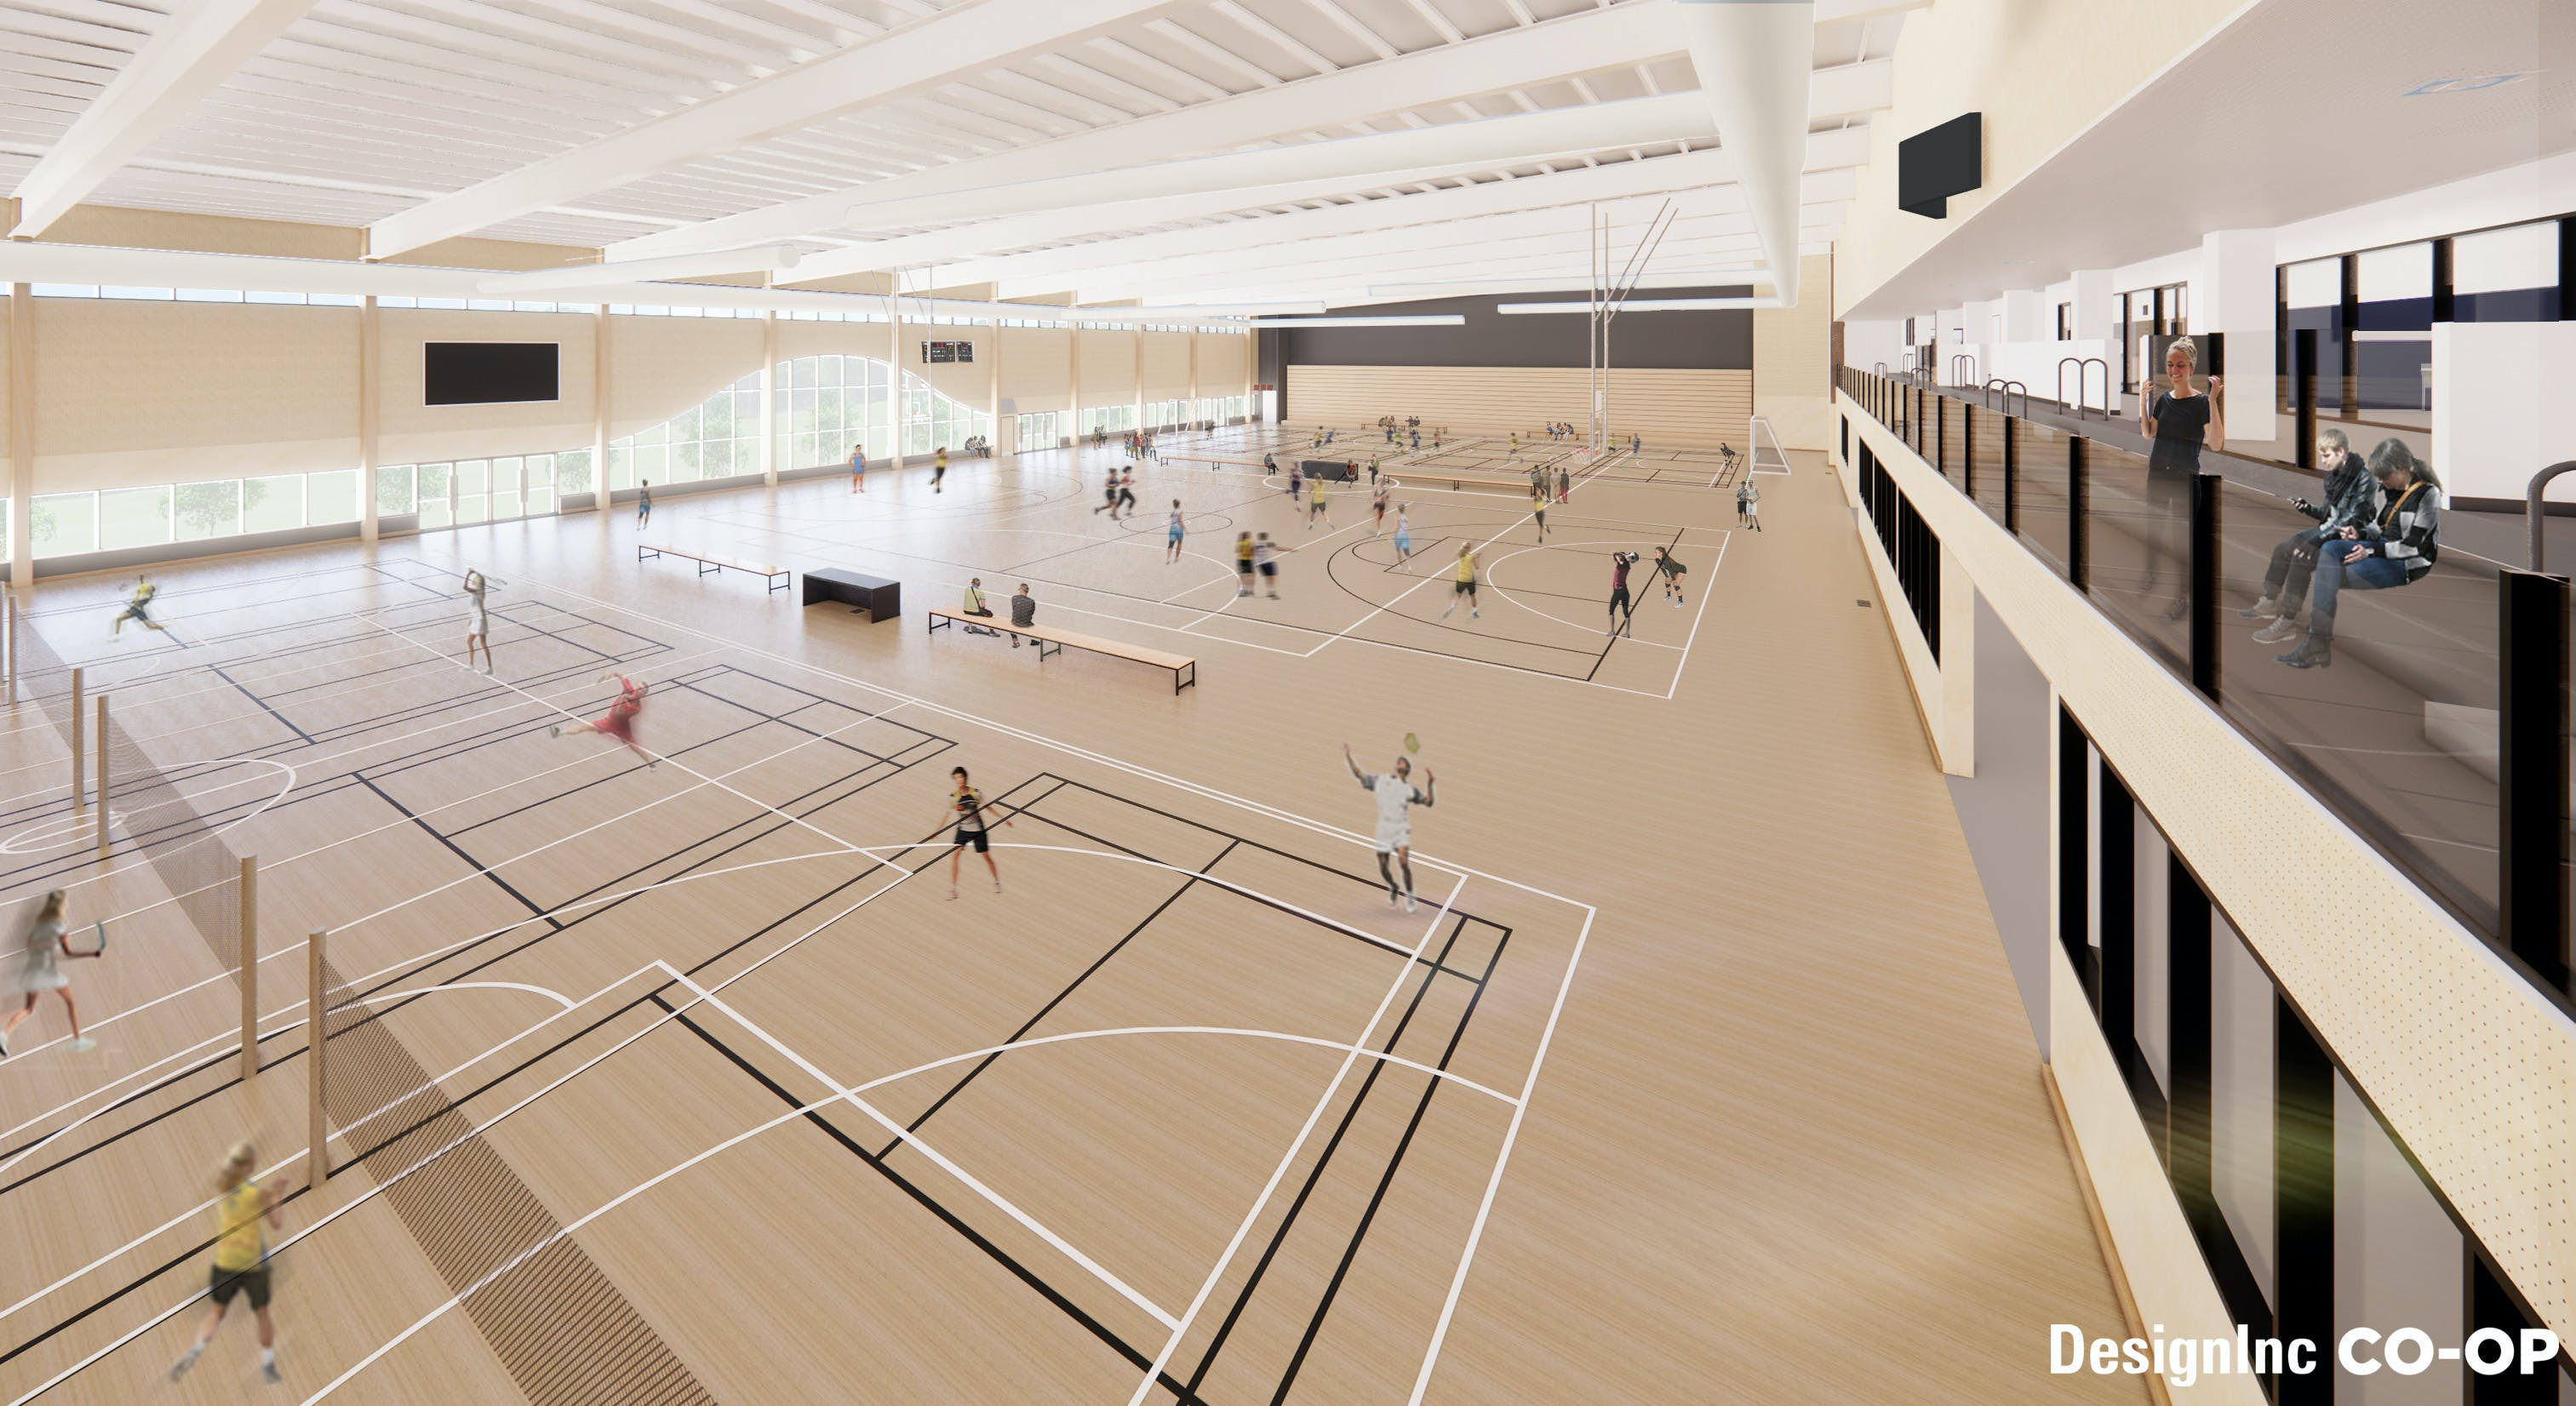 Mixed Use - Sports Courts